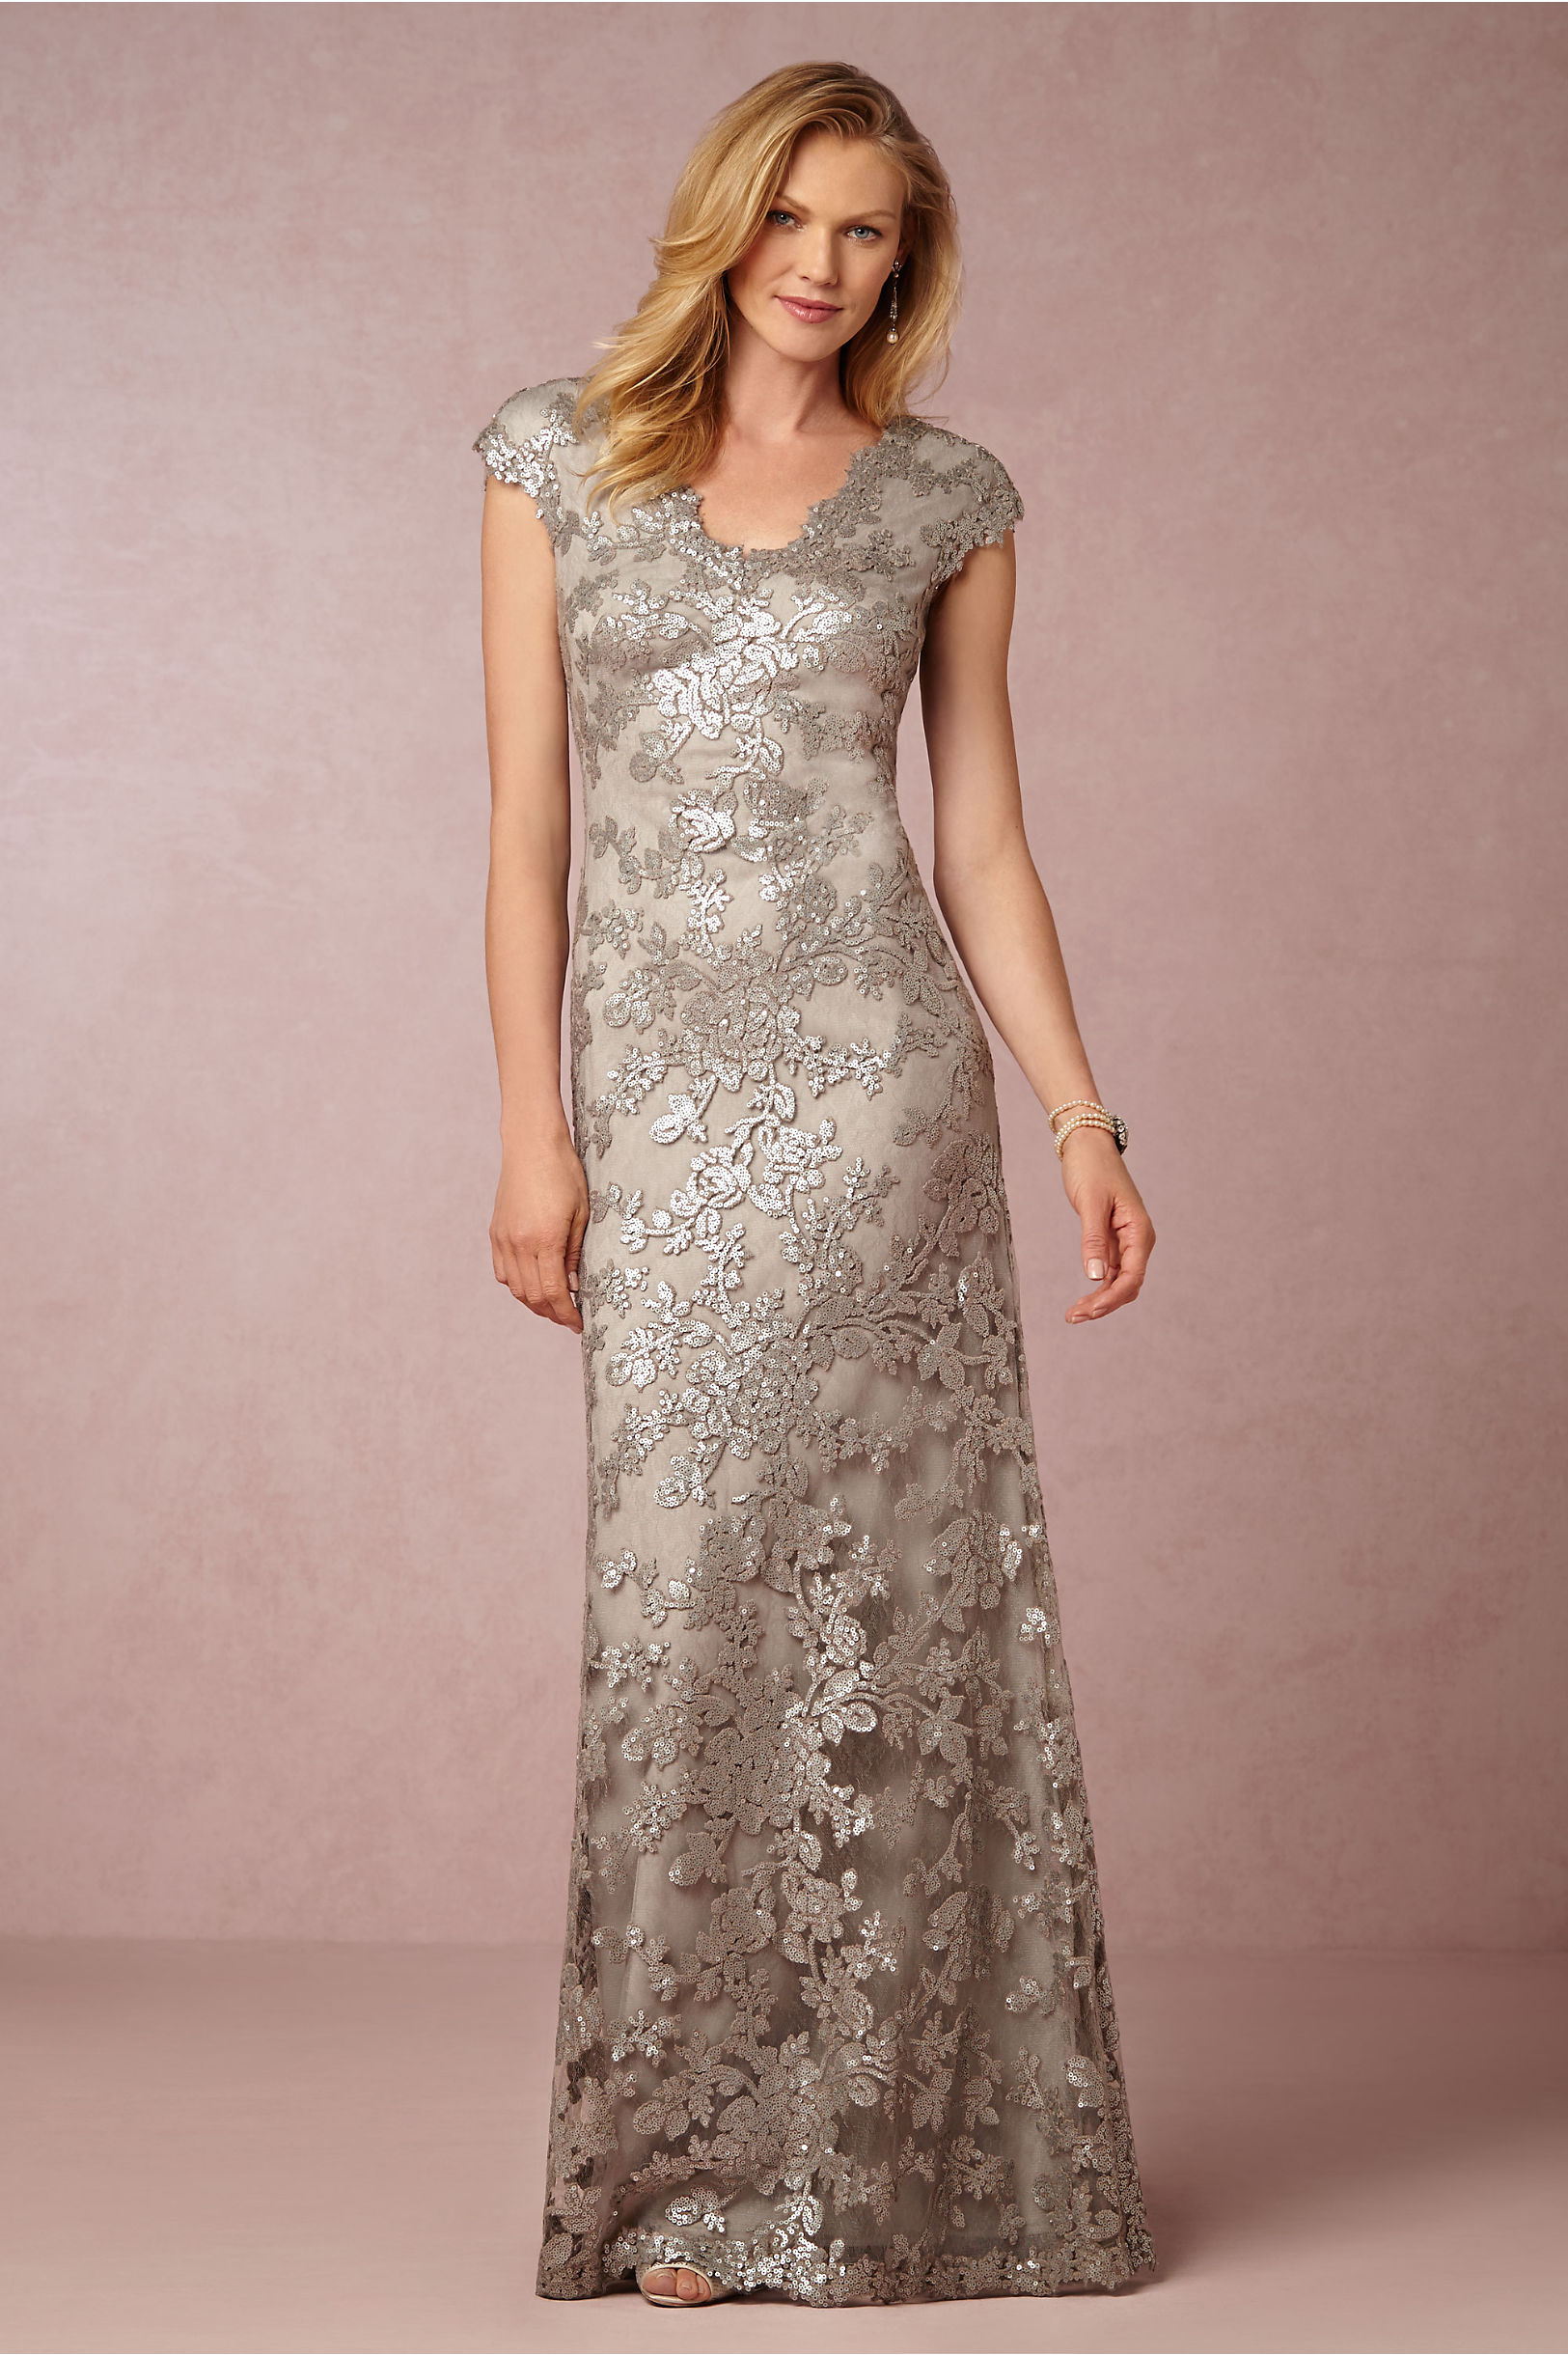 Silver veda dress in new bhldn silver veda dress bhldn ombrellifo Image collections